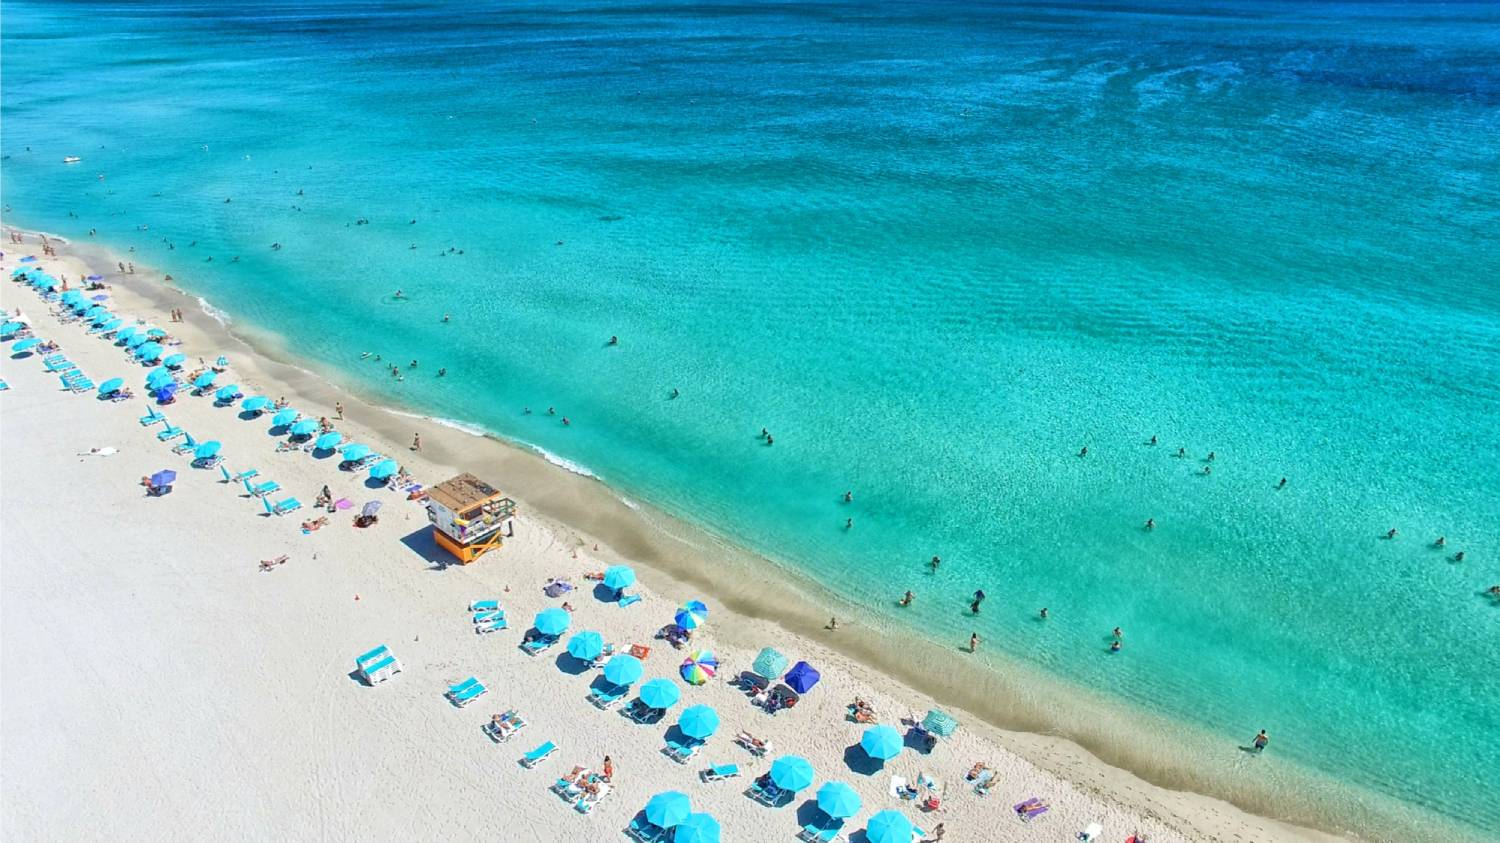 South Beach - Things To Do In Miami